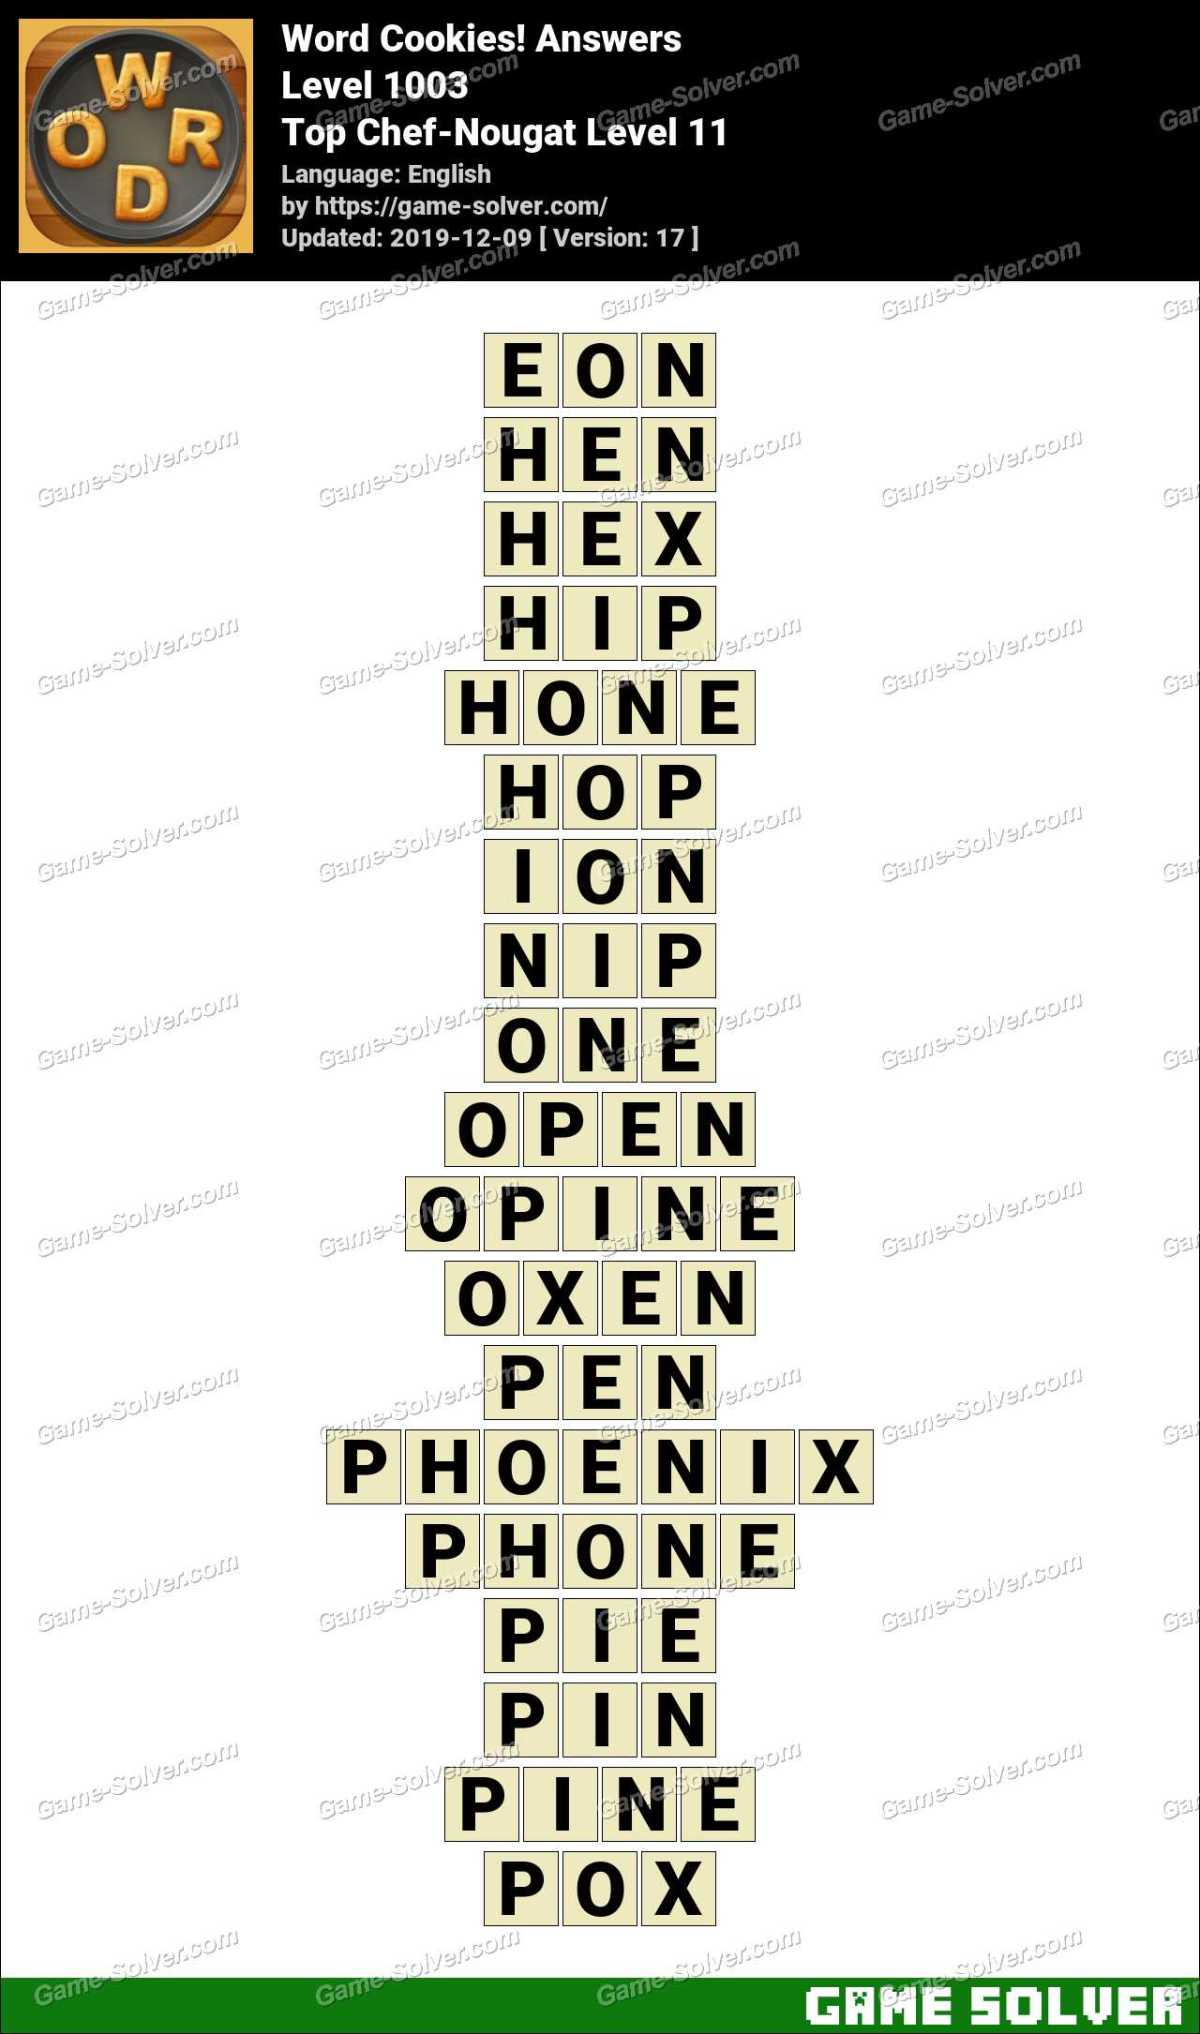 Word Cookies Top Chef-Nougat Level 11 Answers